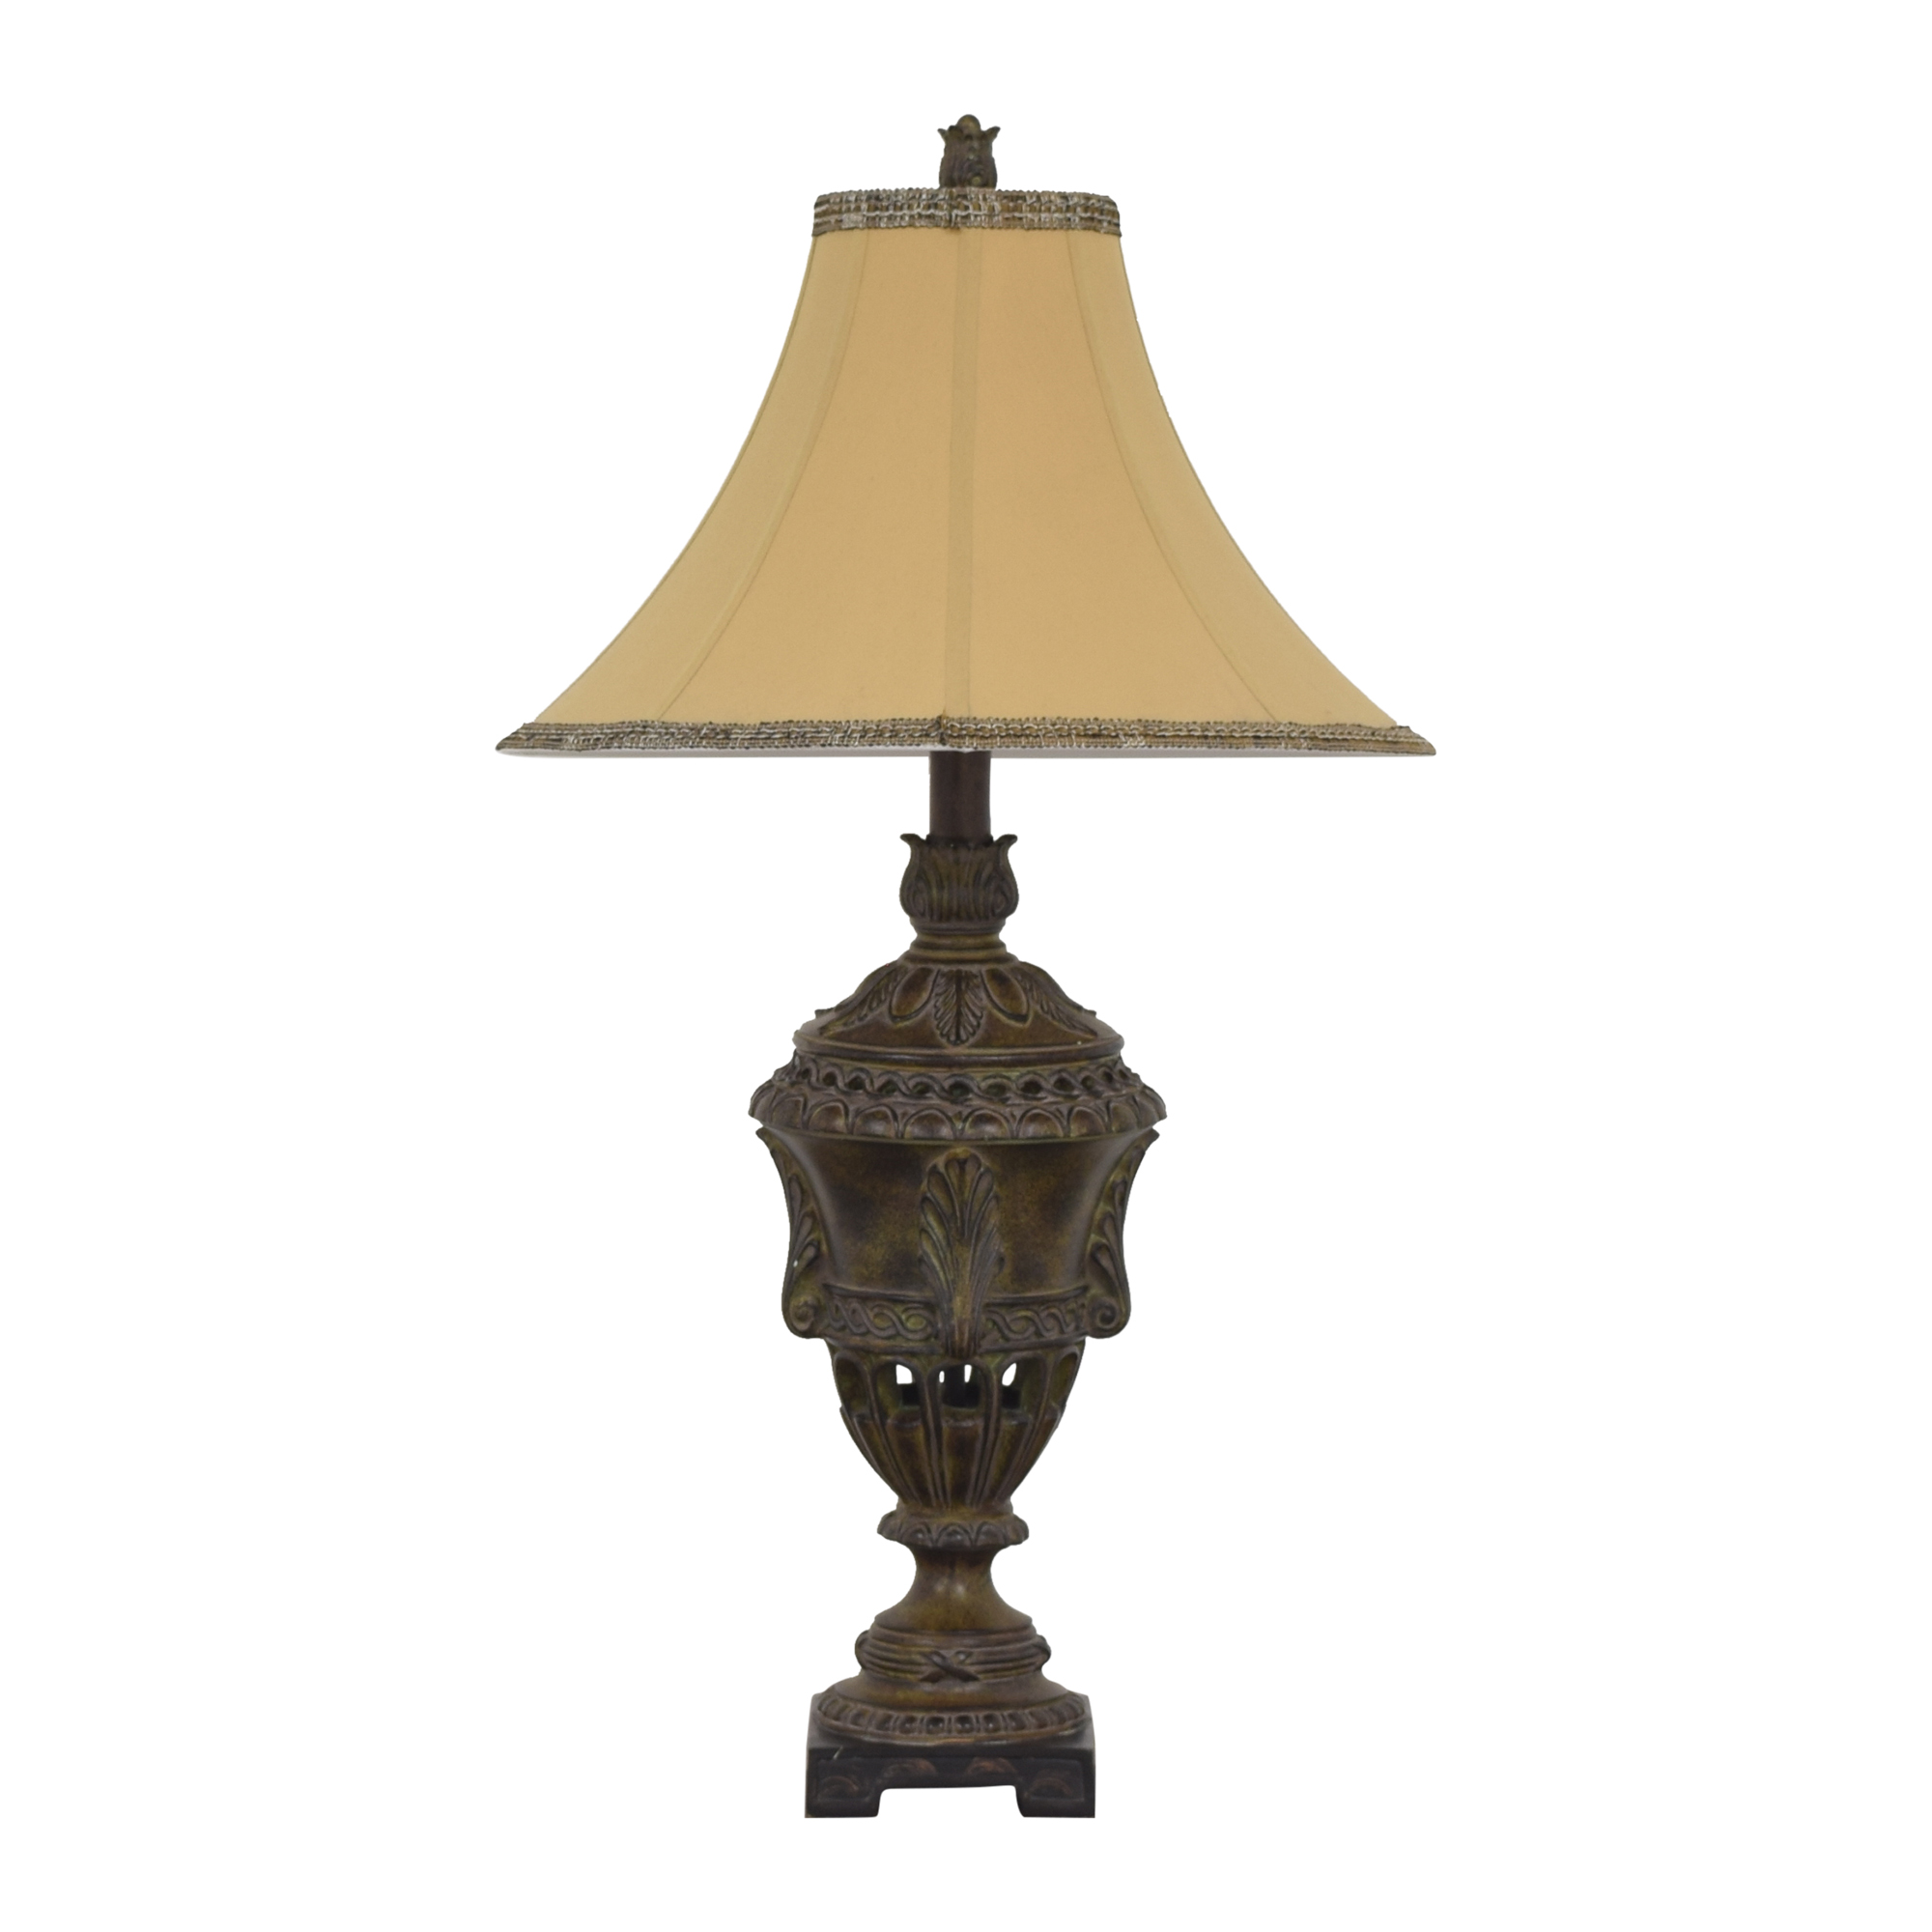 Urn-Style Night Lamp on sale